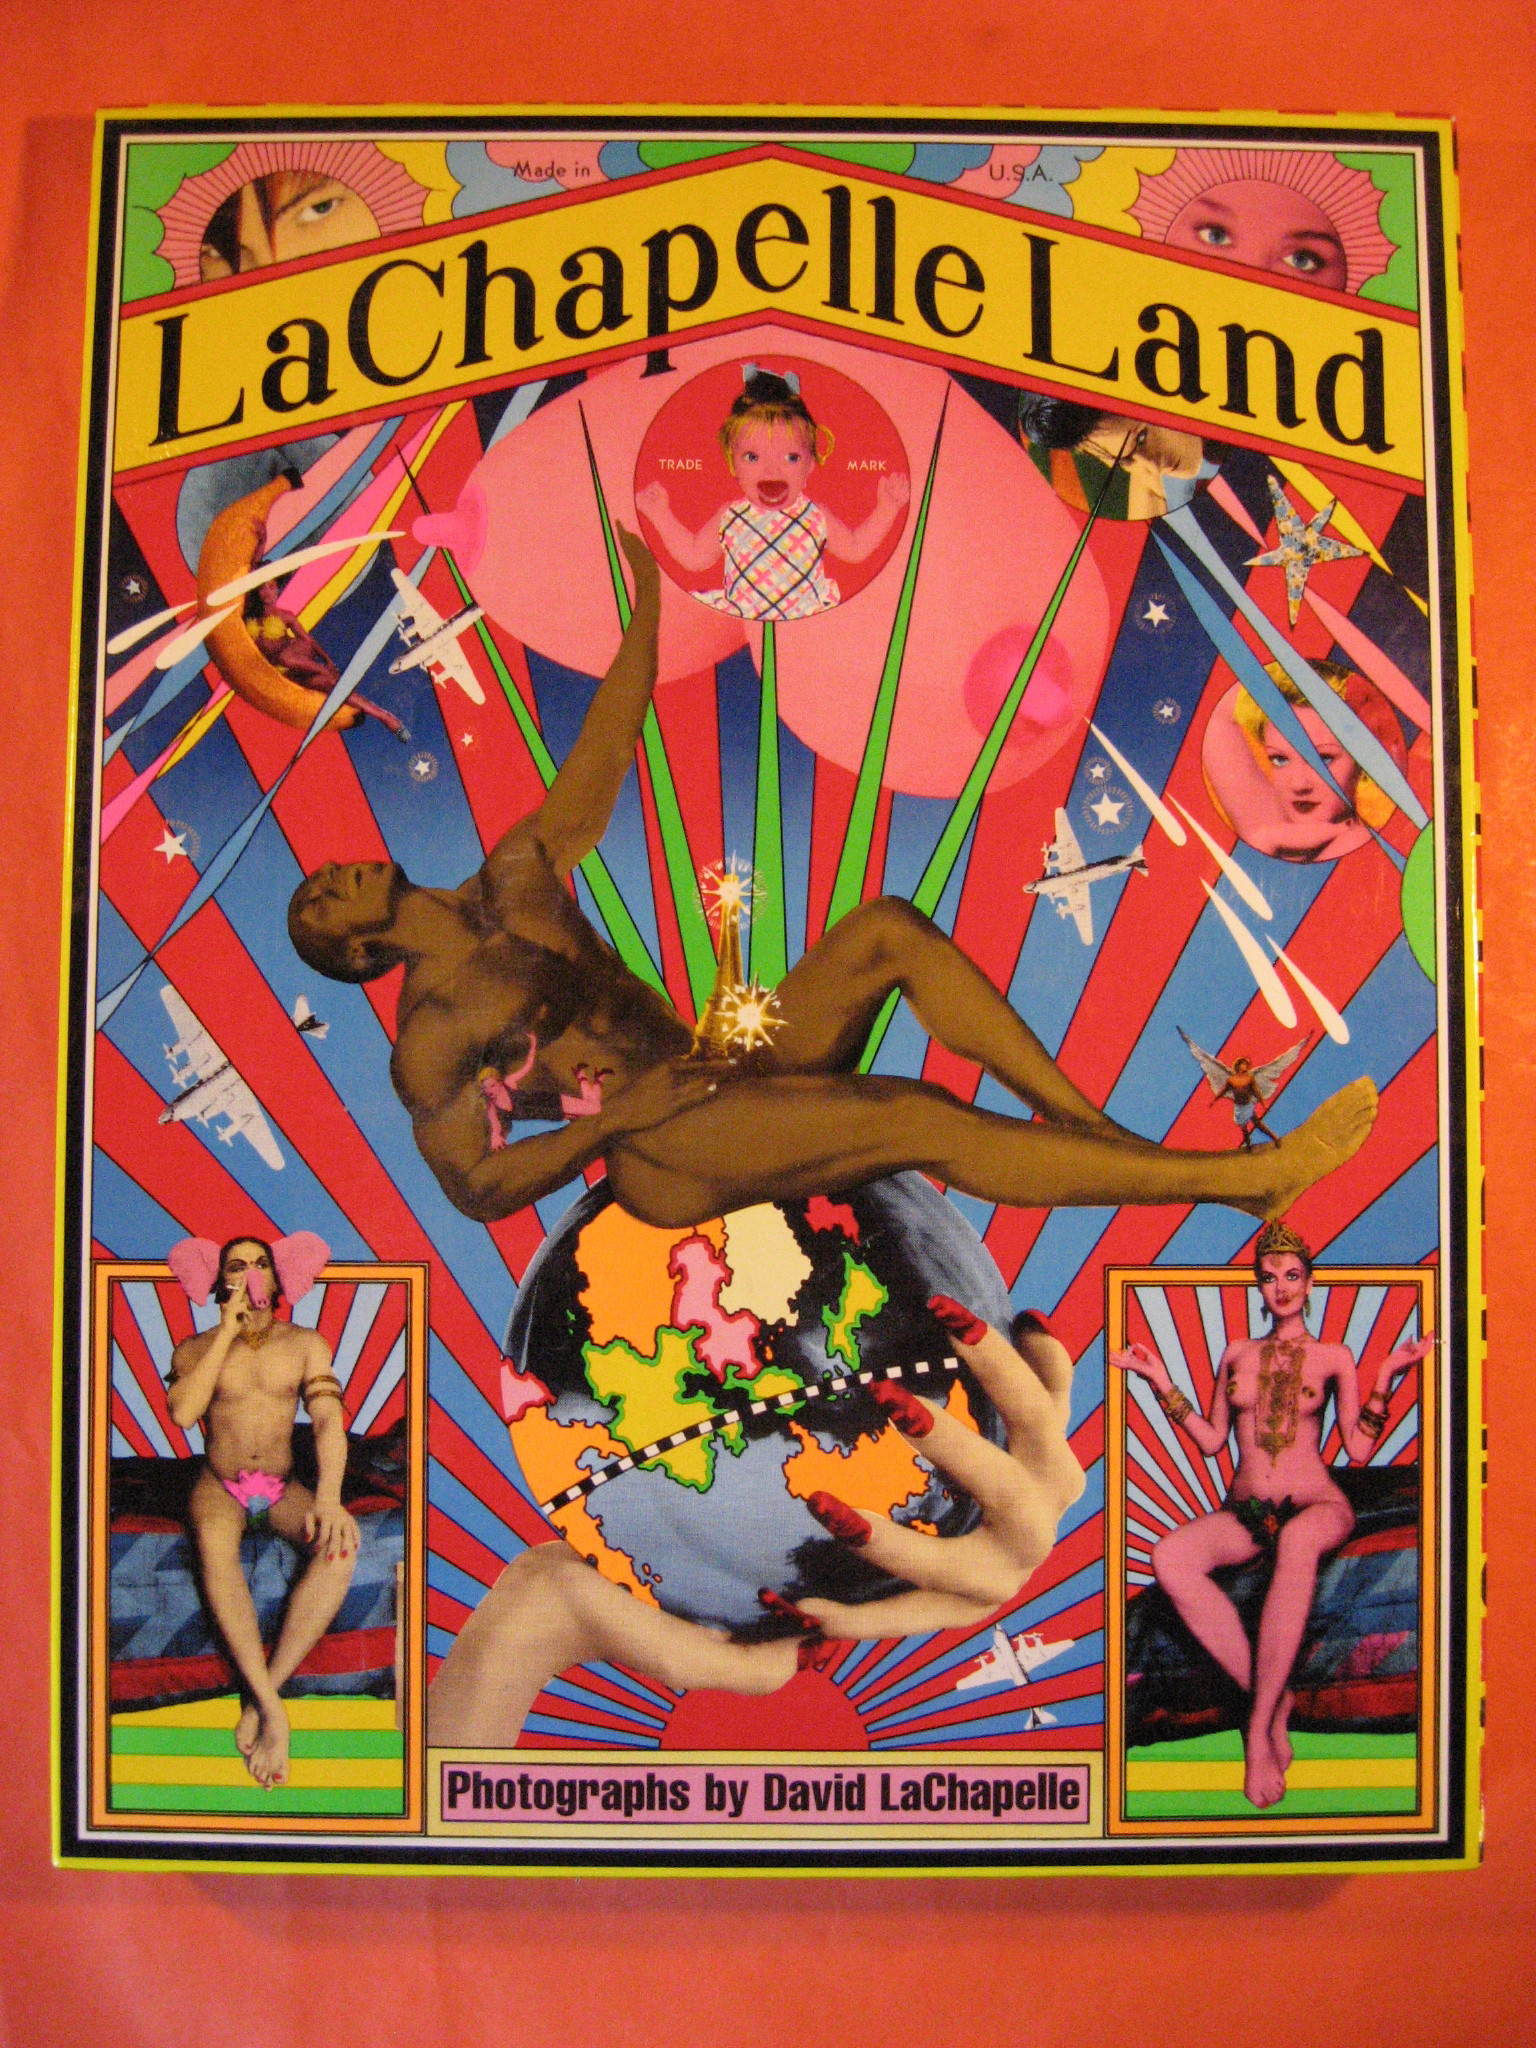 Lachapelle Land: Photographs